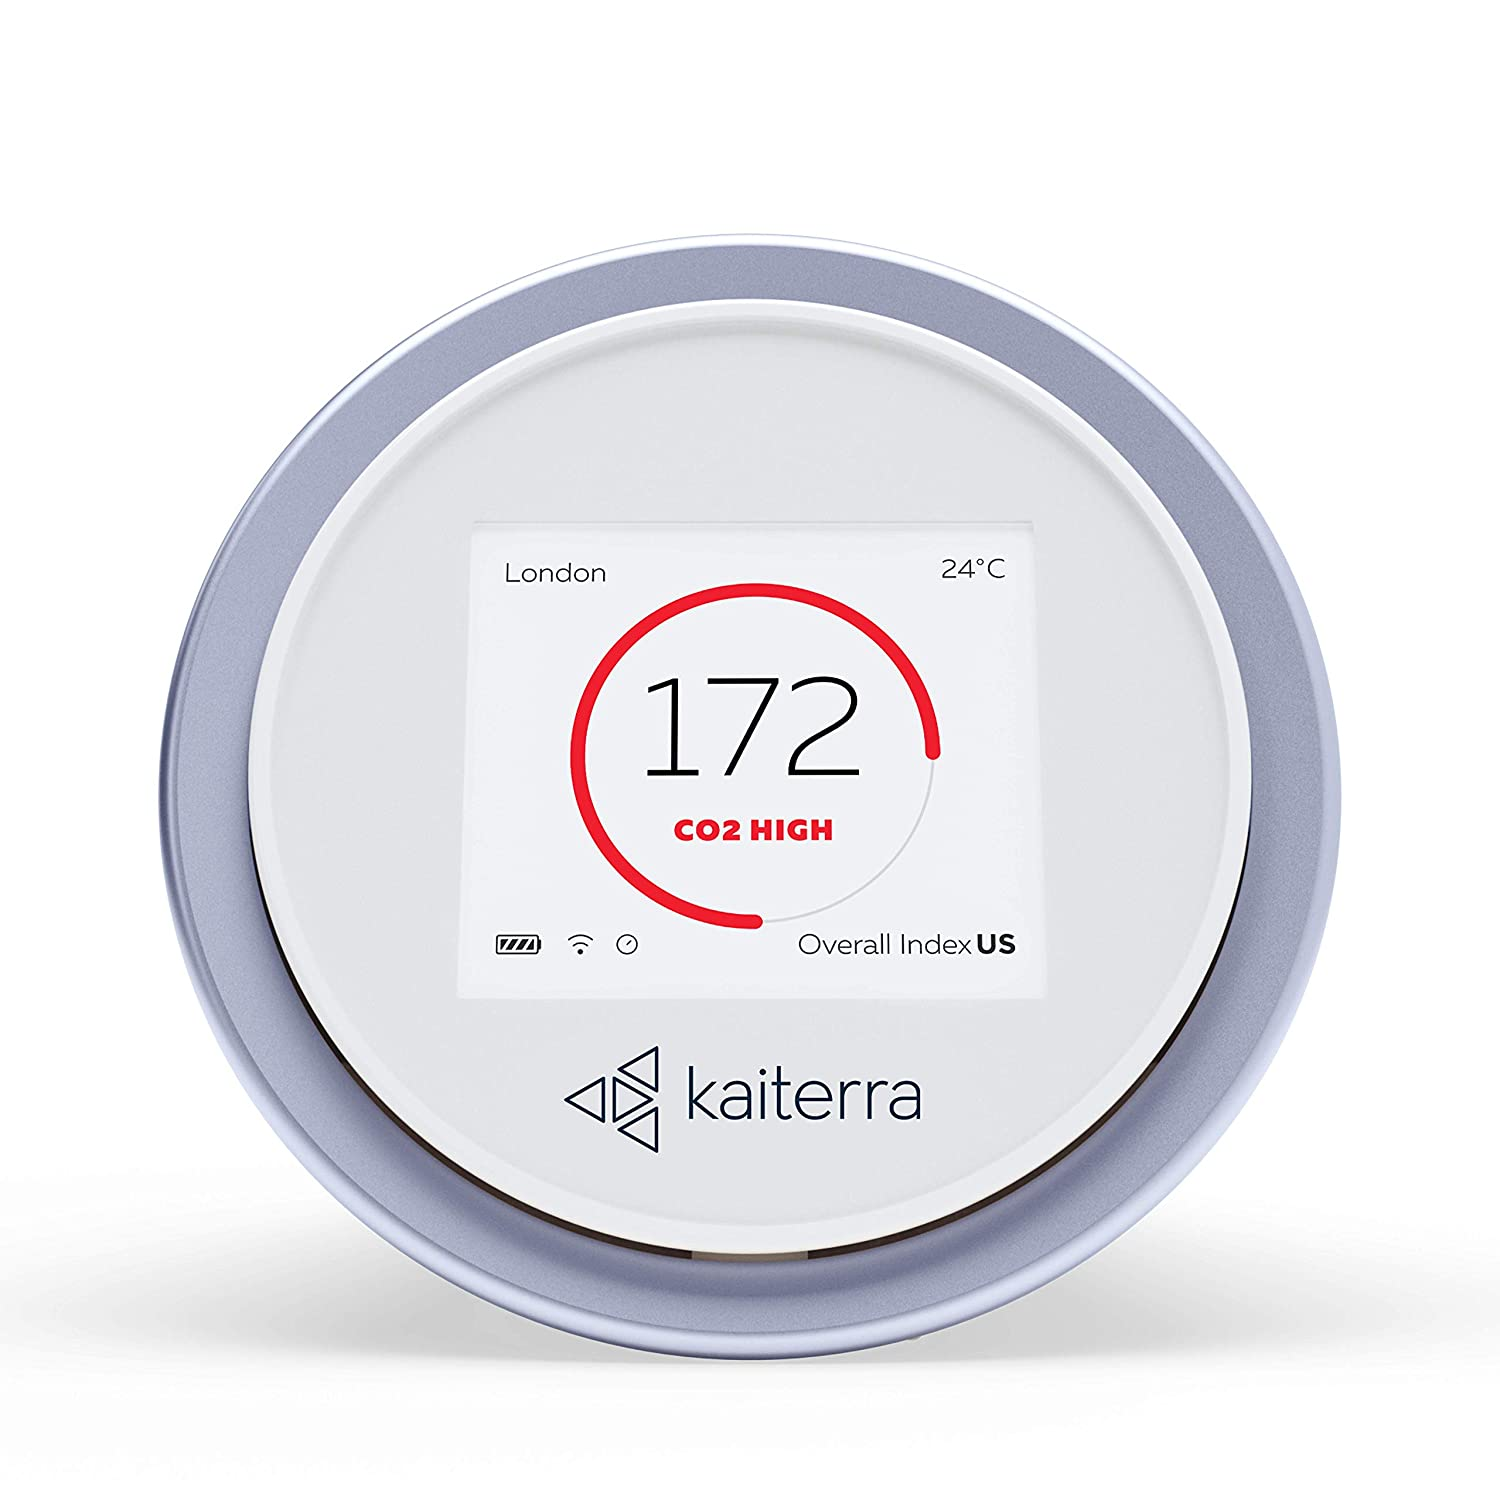 Image of Indoor Air Quality Meters Kaiterra Laser Egg+ CO2: Indoor Air Quality Monitor (Tracks PM2.5, Fine Dust, CO2, Temperature, and Humidity)